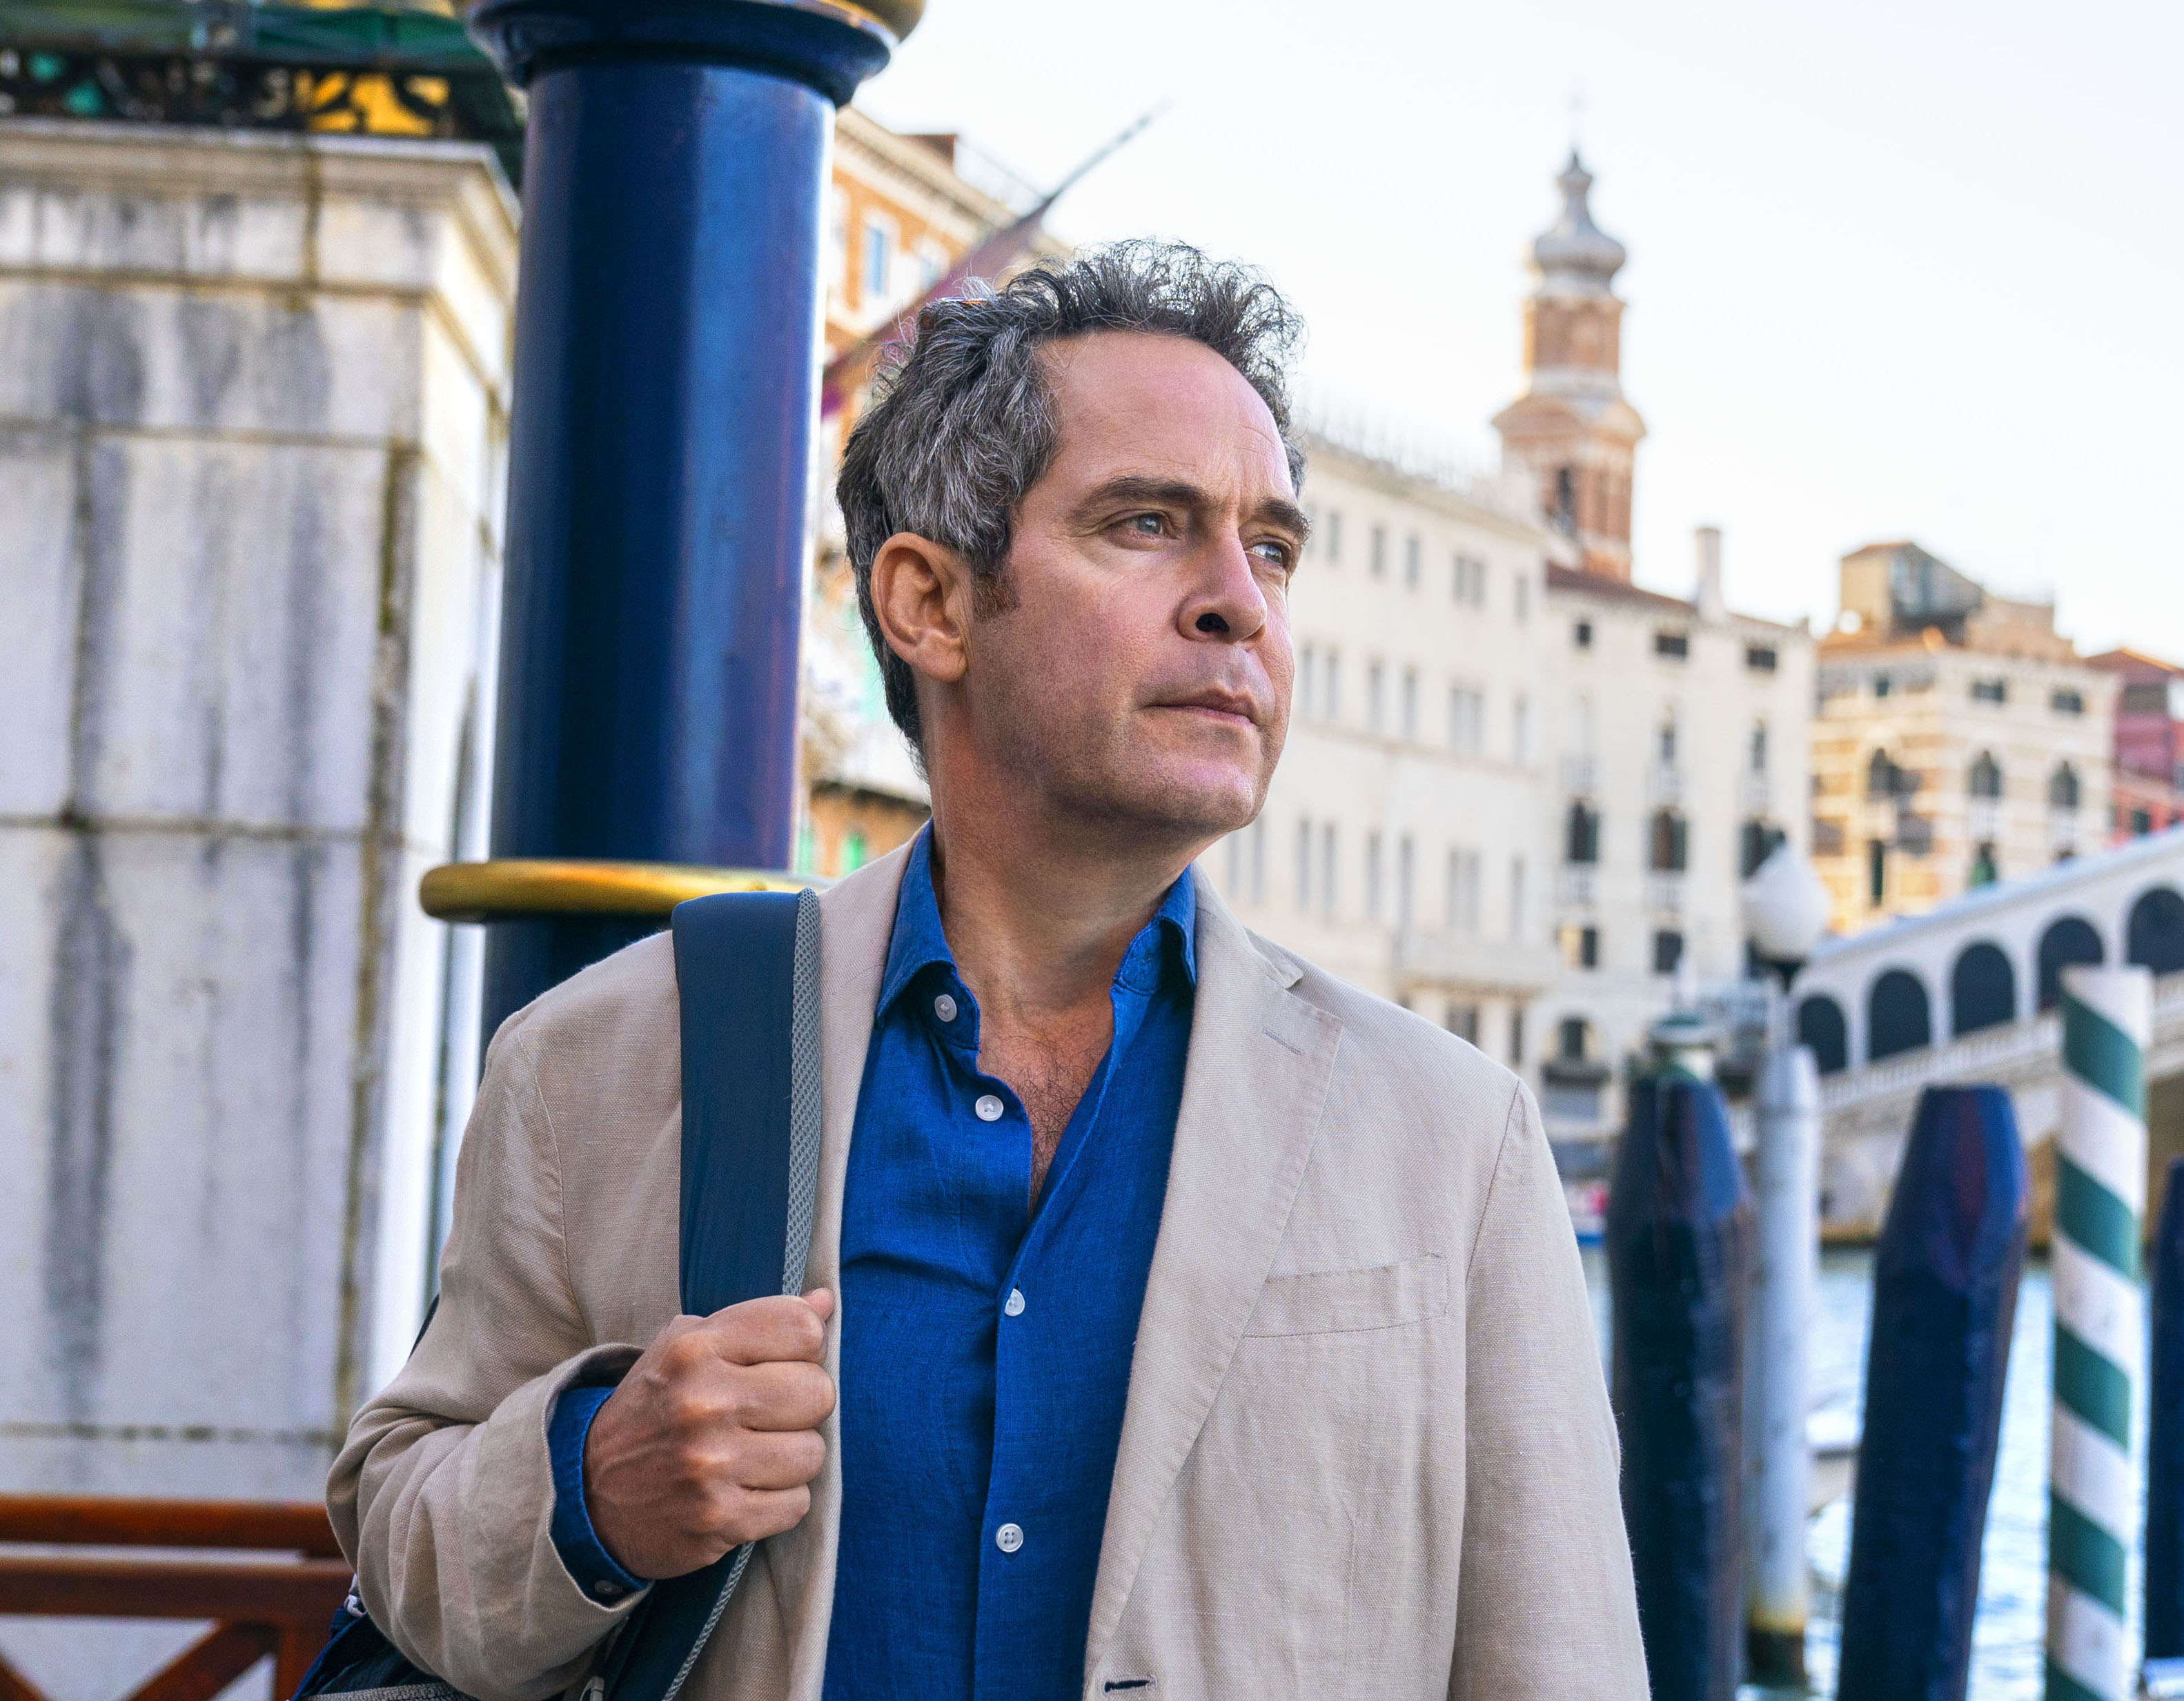 """MASTERPIECE""""Us""""Sundays, June 20 & 27, 2021 at 9/8cIn a drama tinged with humor and heartbreak, Tom Hollander (Baptiste, The Night Manager) and Saskia Reeves (Luther) play a couple who embark on a long-planned grand tour of Europe, despite the wife's wrenching proclamation that she wants to leave the marriage. The four-part series is based on a novel by best-selling author David Nicholls. The Daily Telegraph called it a """"brilliantly witty and heartfelt drama about a family on the edge.""""Shown: Tom Hollander as DouglasFor editorial use only.Courtesy of Drama Republic and MASTERPIECE."""